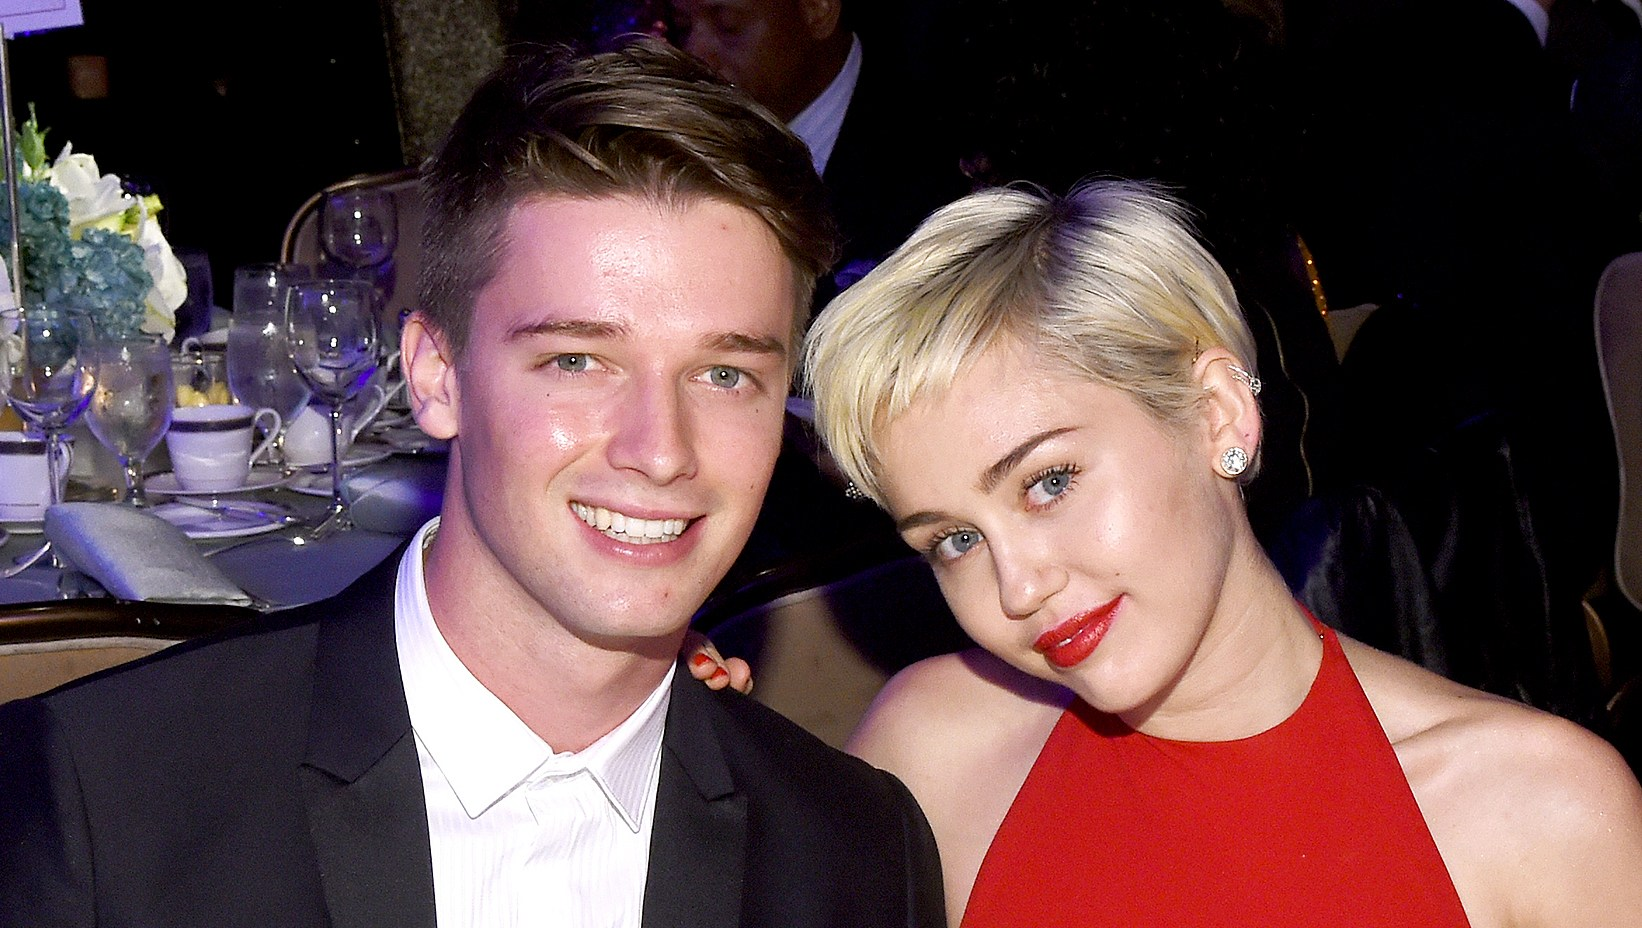 Patrick-Schwarzenegger-Went-to-Easter-High-During-Miley-Relationship